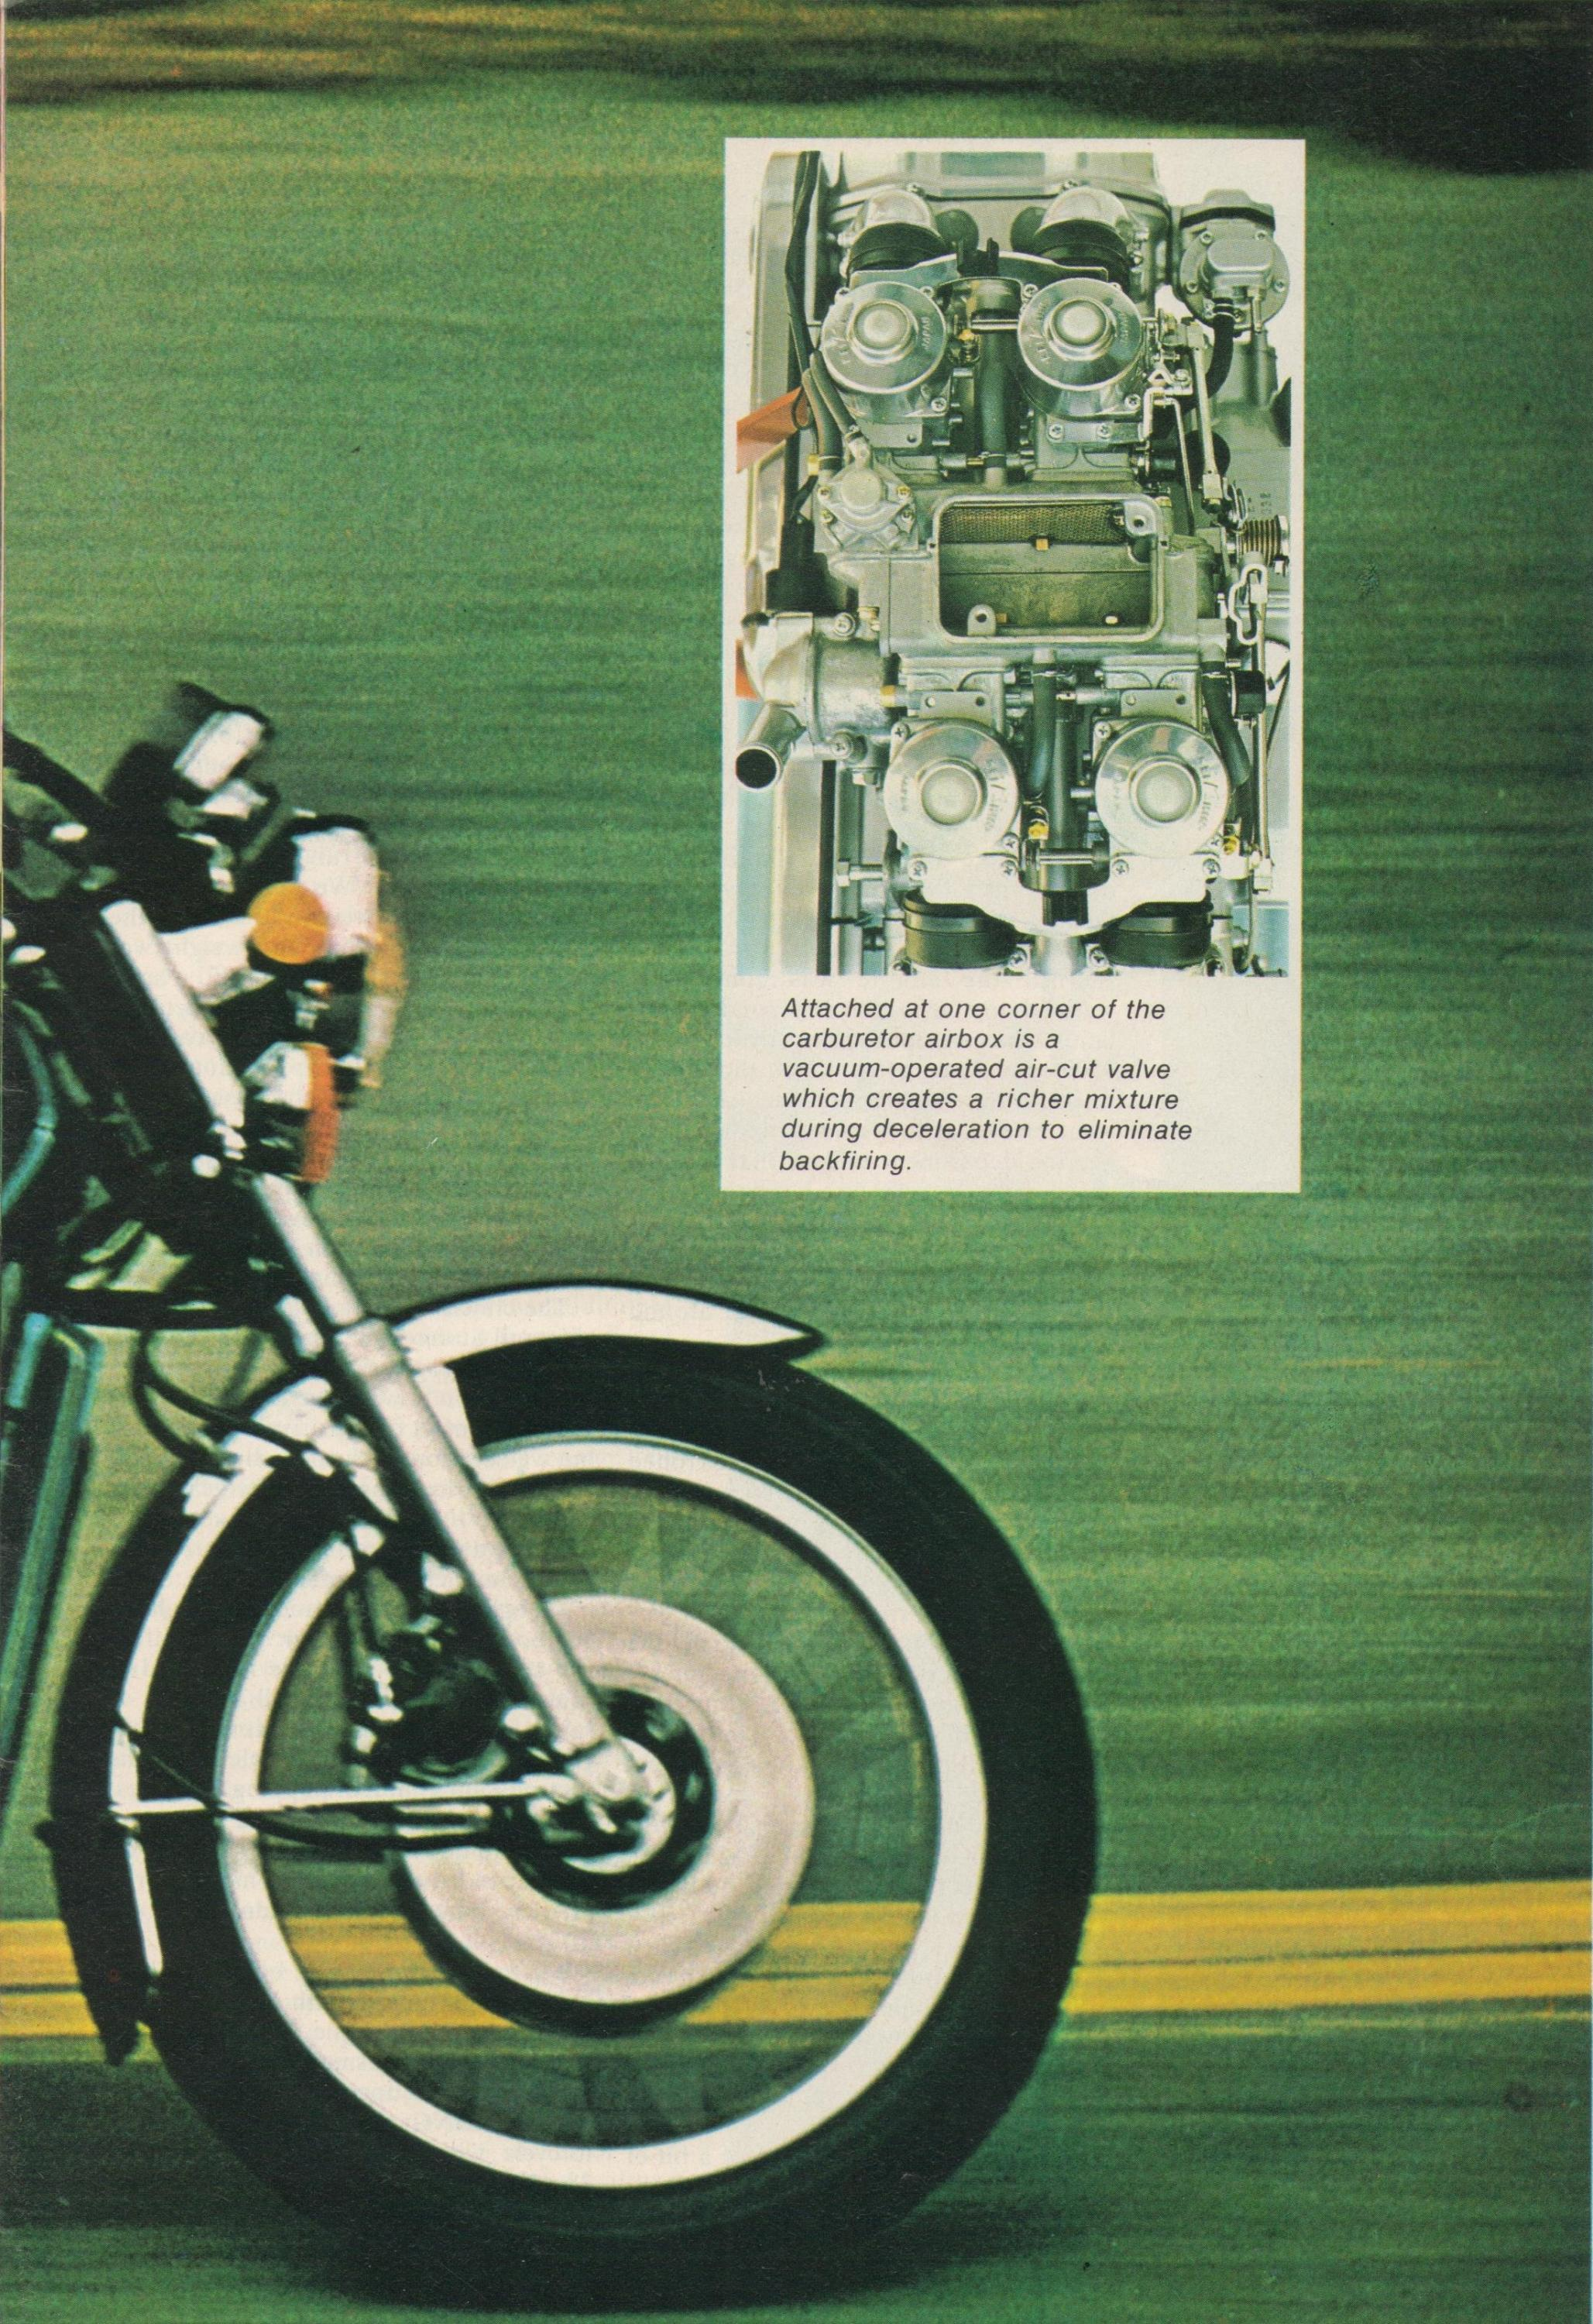 1975 GL-1000 test report Cycle Guide Magazine April 1975-1975-gl-1000-test-report-p.10.jpg